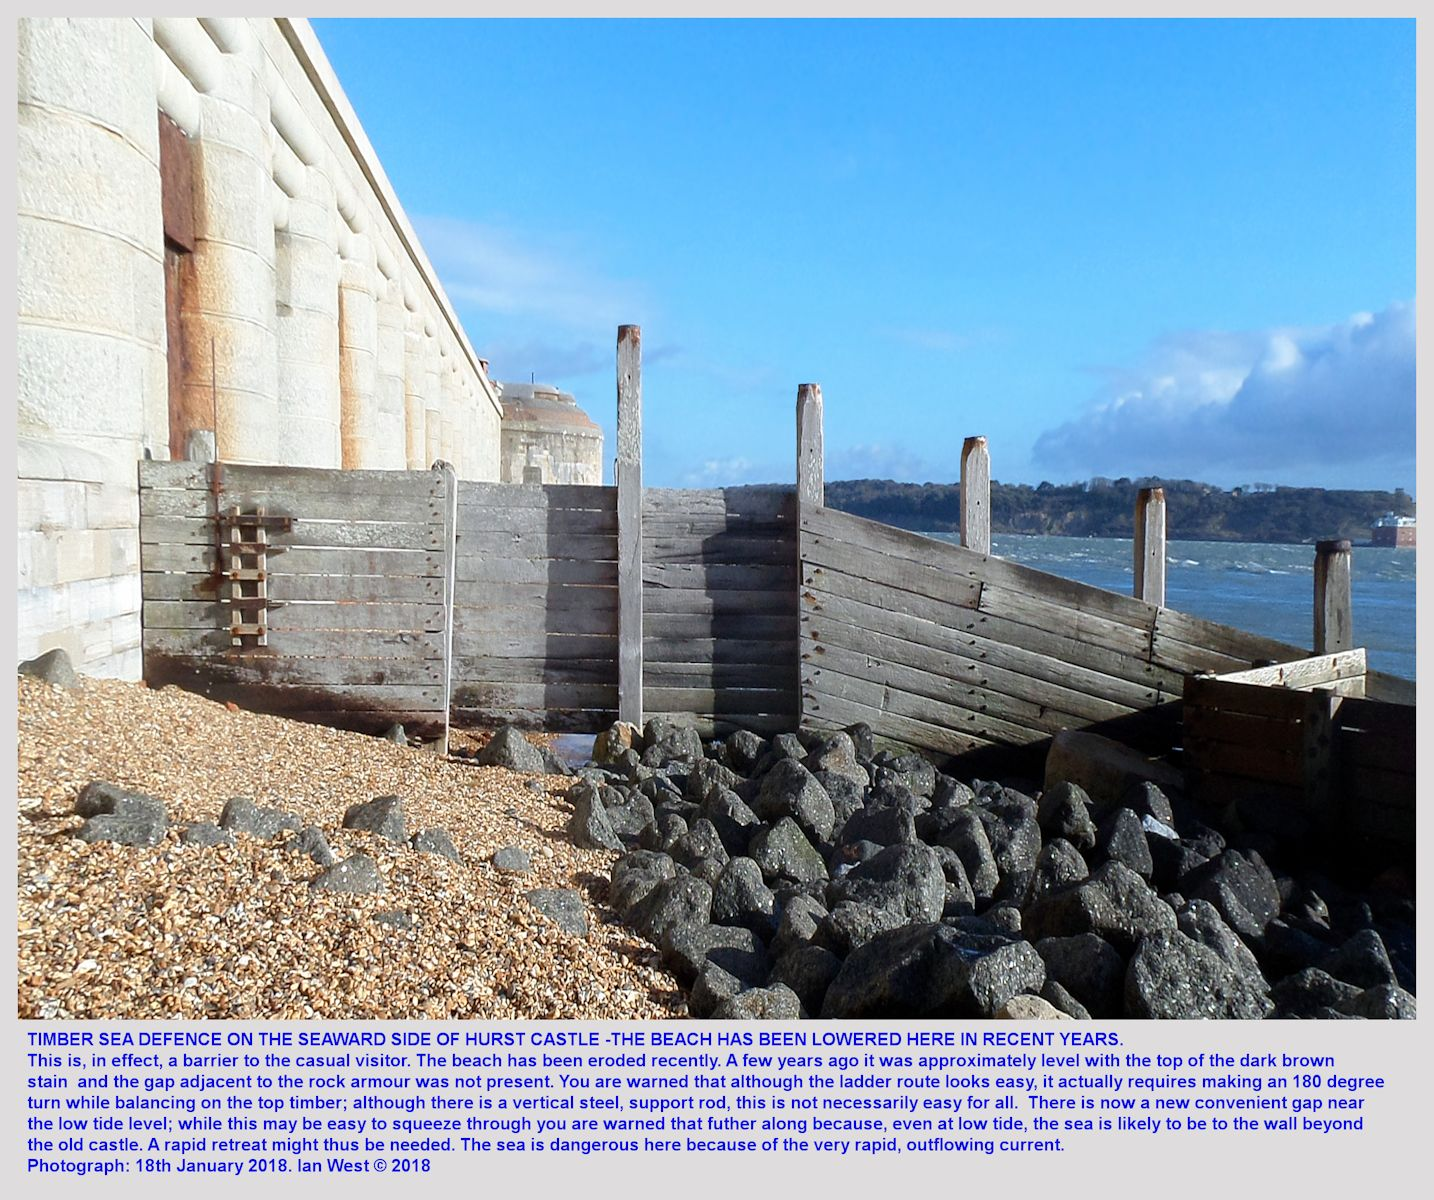 A timber groyne barrier on the seaward side of Hurst Castle that may, perhaps, not always be crossed for safety reasons